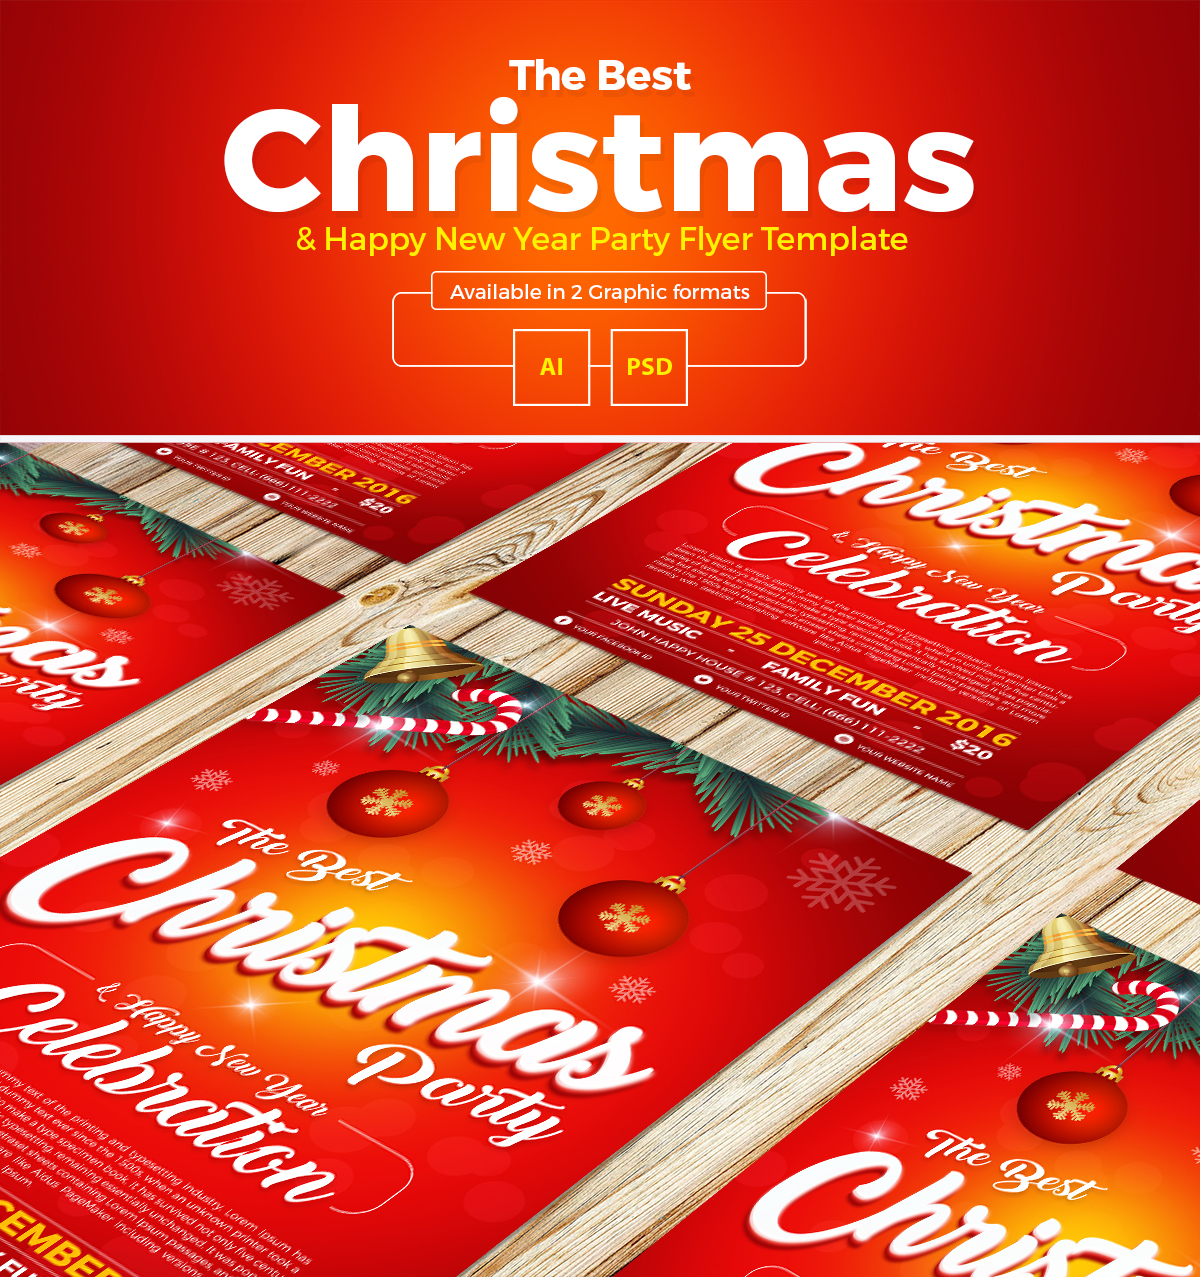 christmas-happy-new-year-party-flyer-template